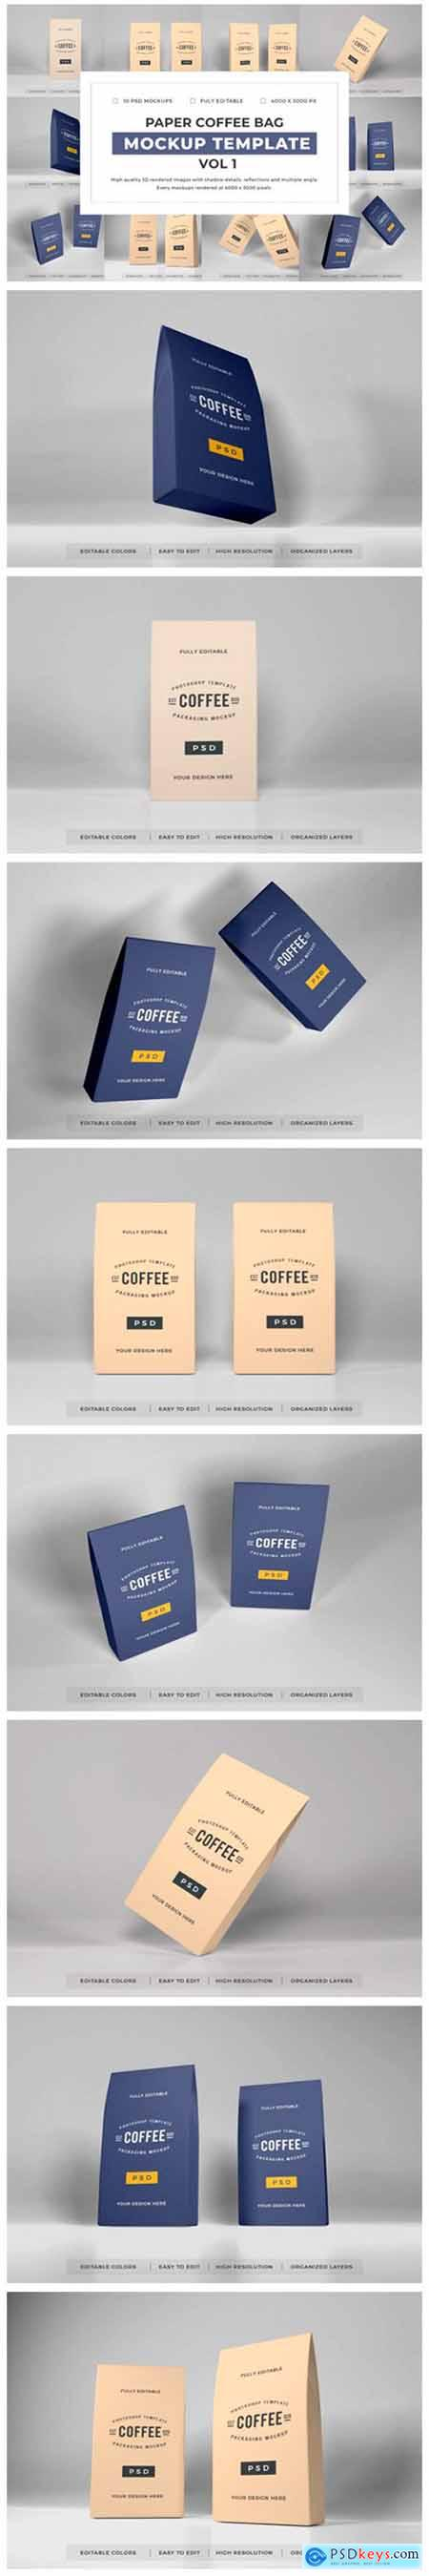 Paper Coffee Bag Mockup Bundle Vol 1 6703736